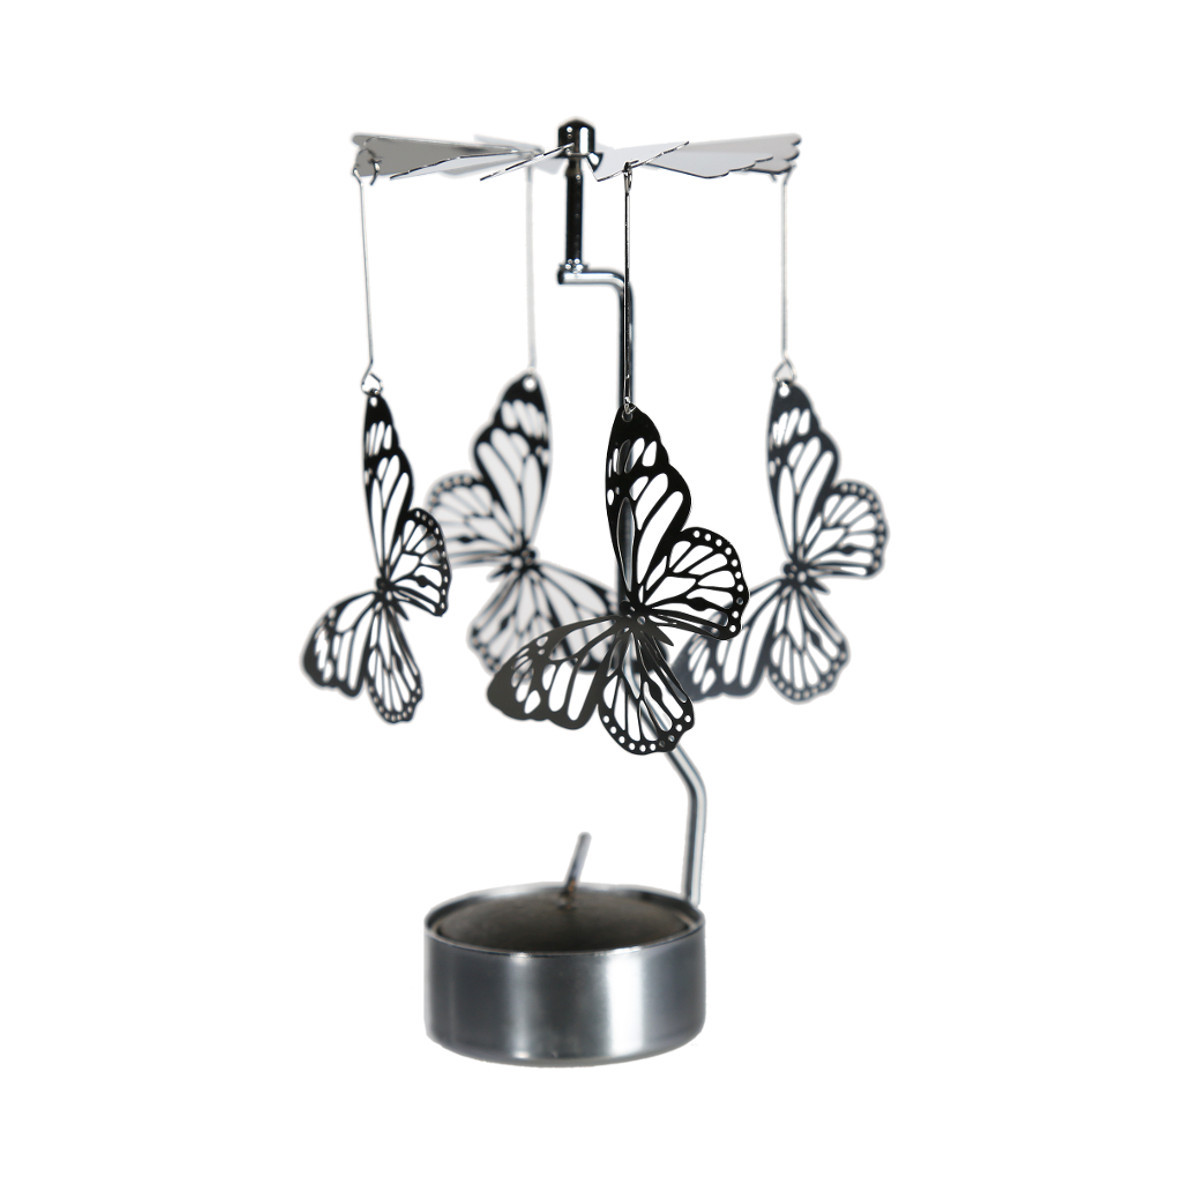 Rotating metal candle holder